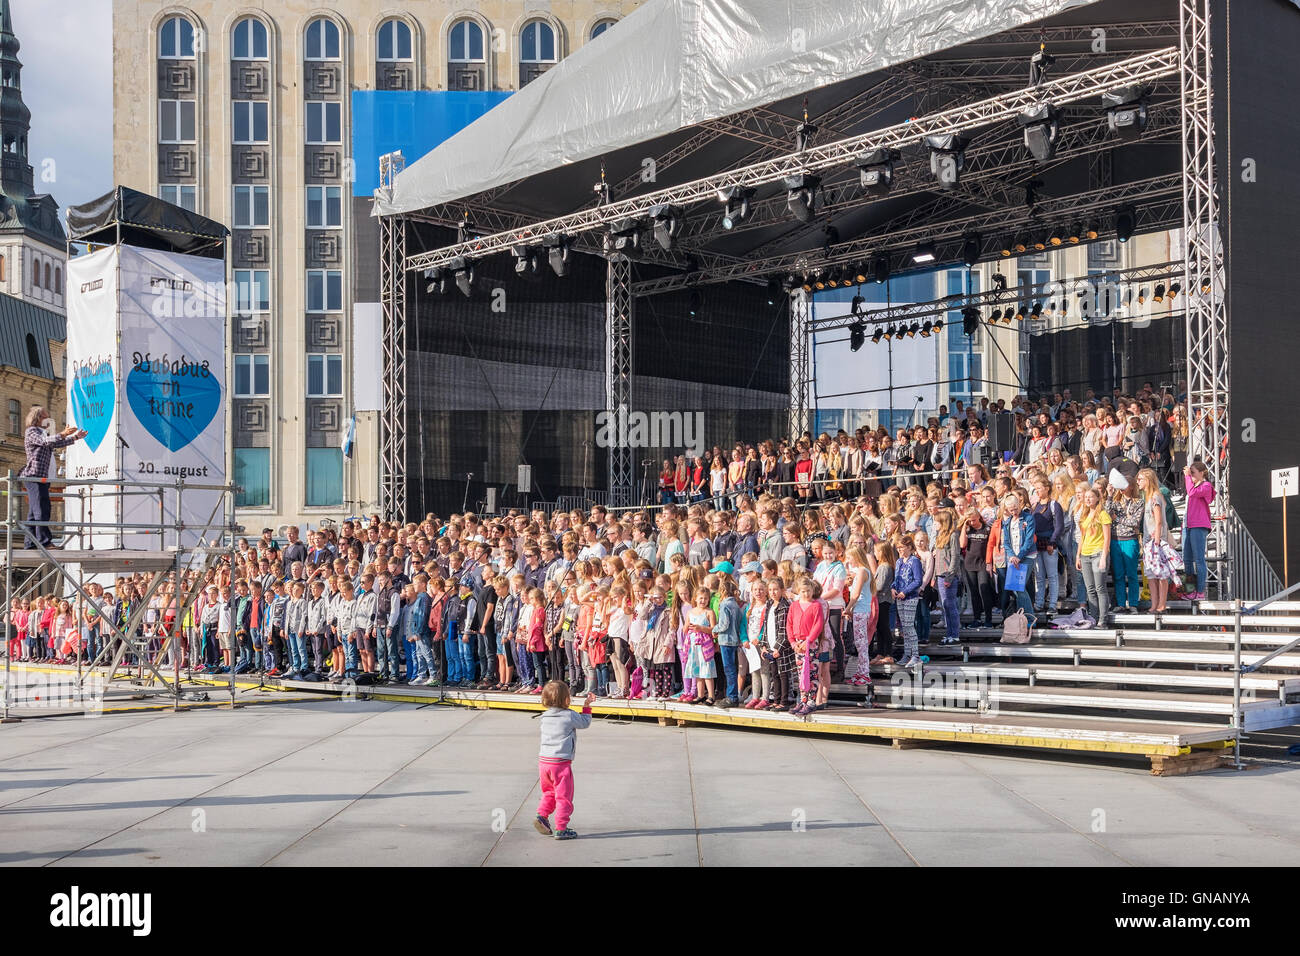 Big choir. Tallinn, Estonia, EU - Stock Image